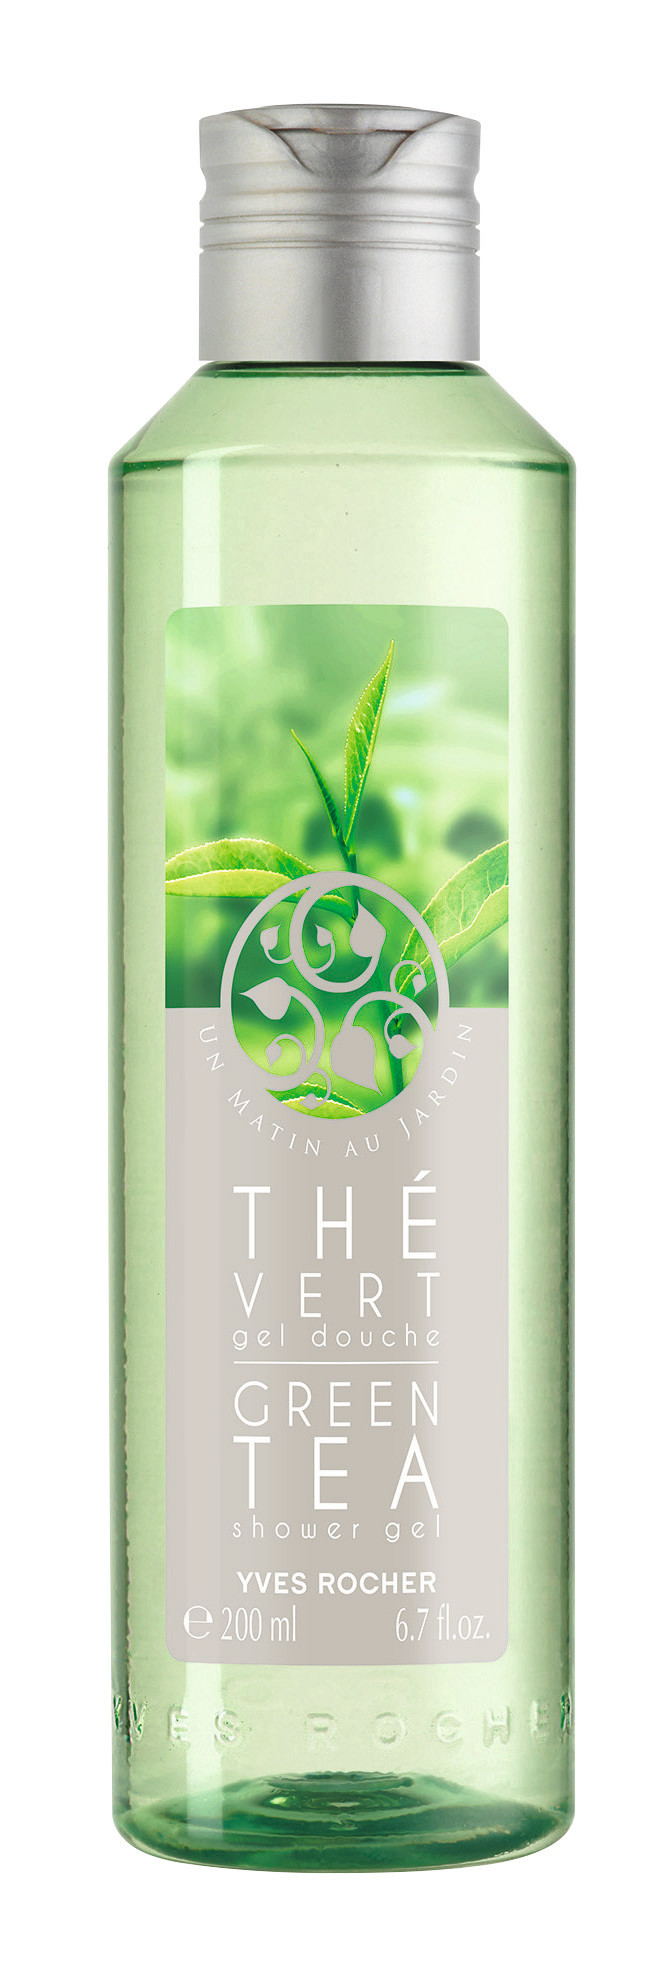 ... The Vert Yves Rocher for women and men Pictures ...